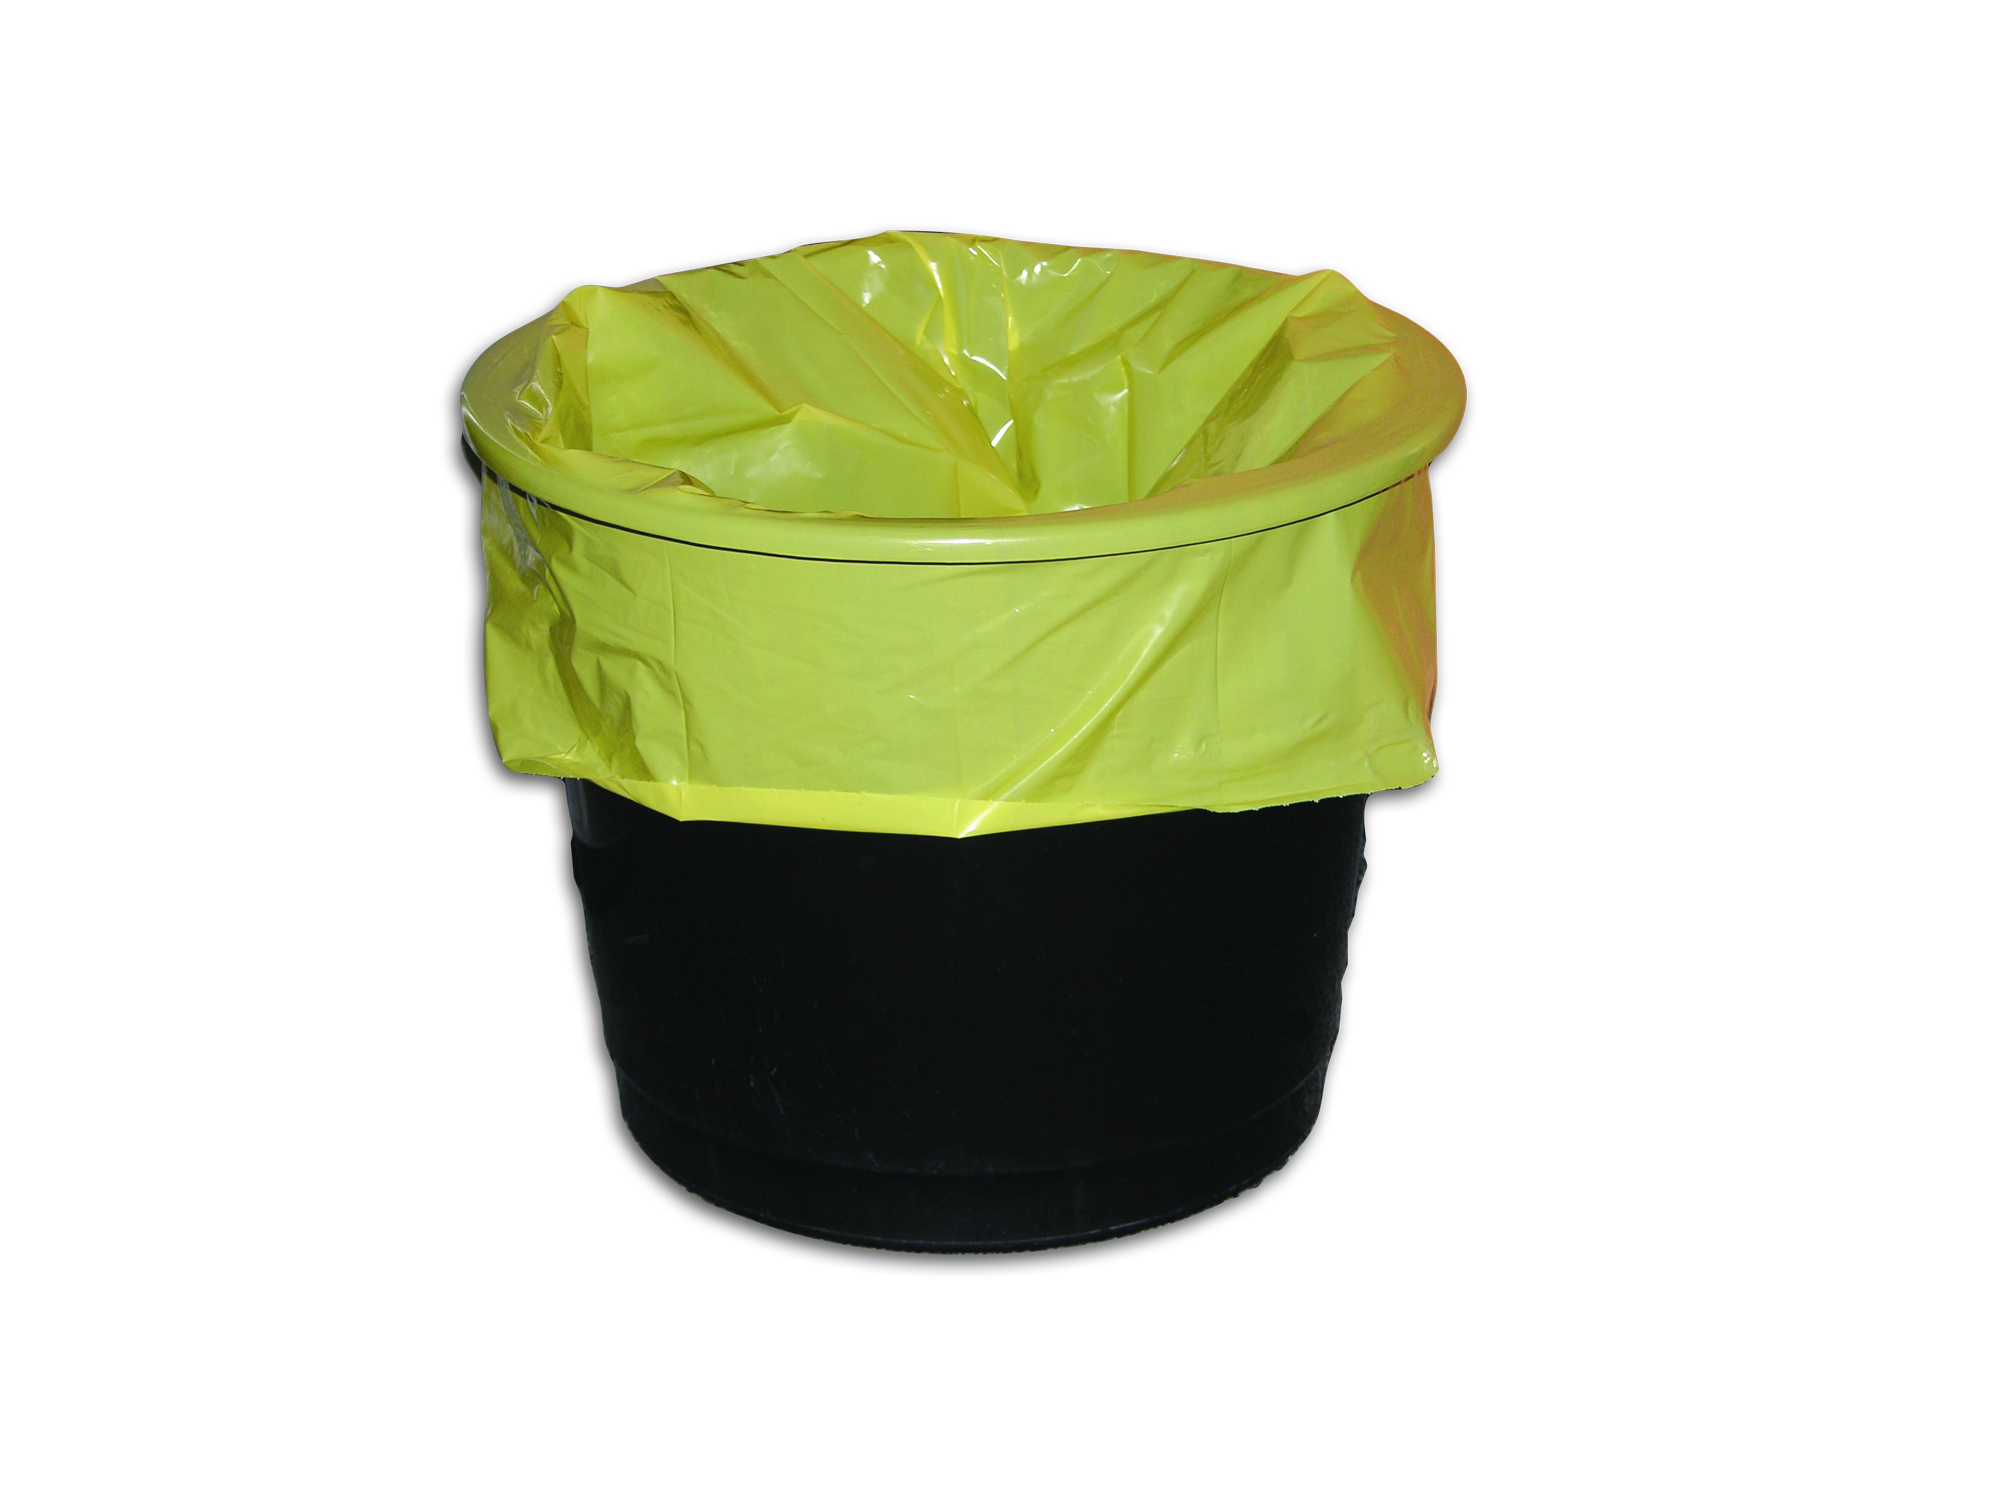 Medium Duty Yellow Pedal Bin Liners x 1000